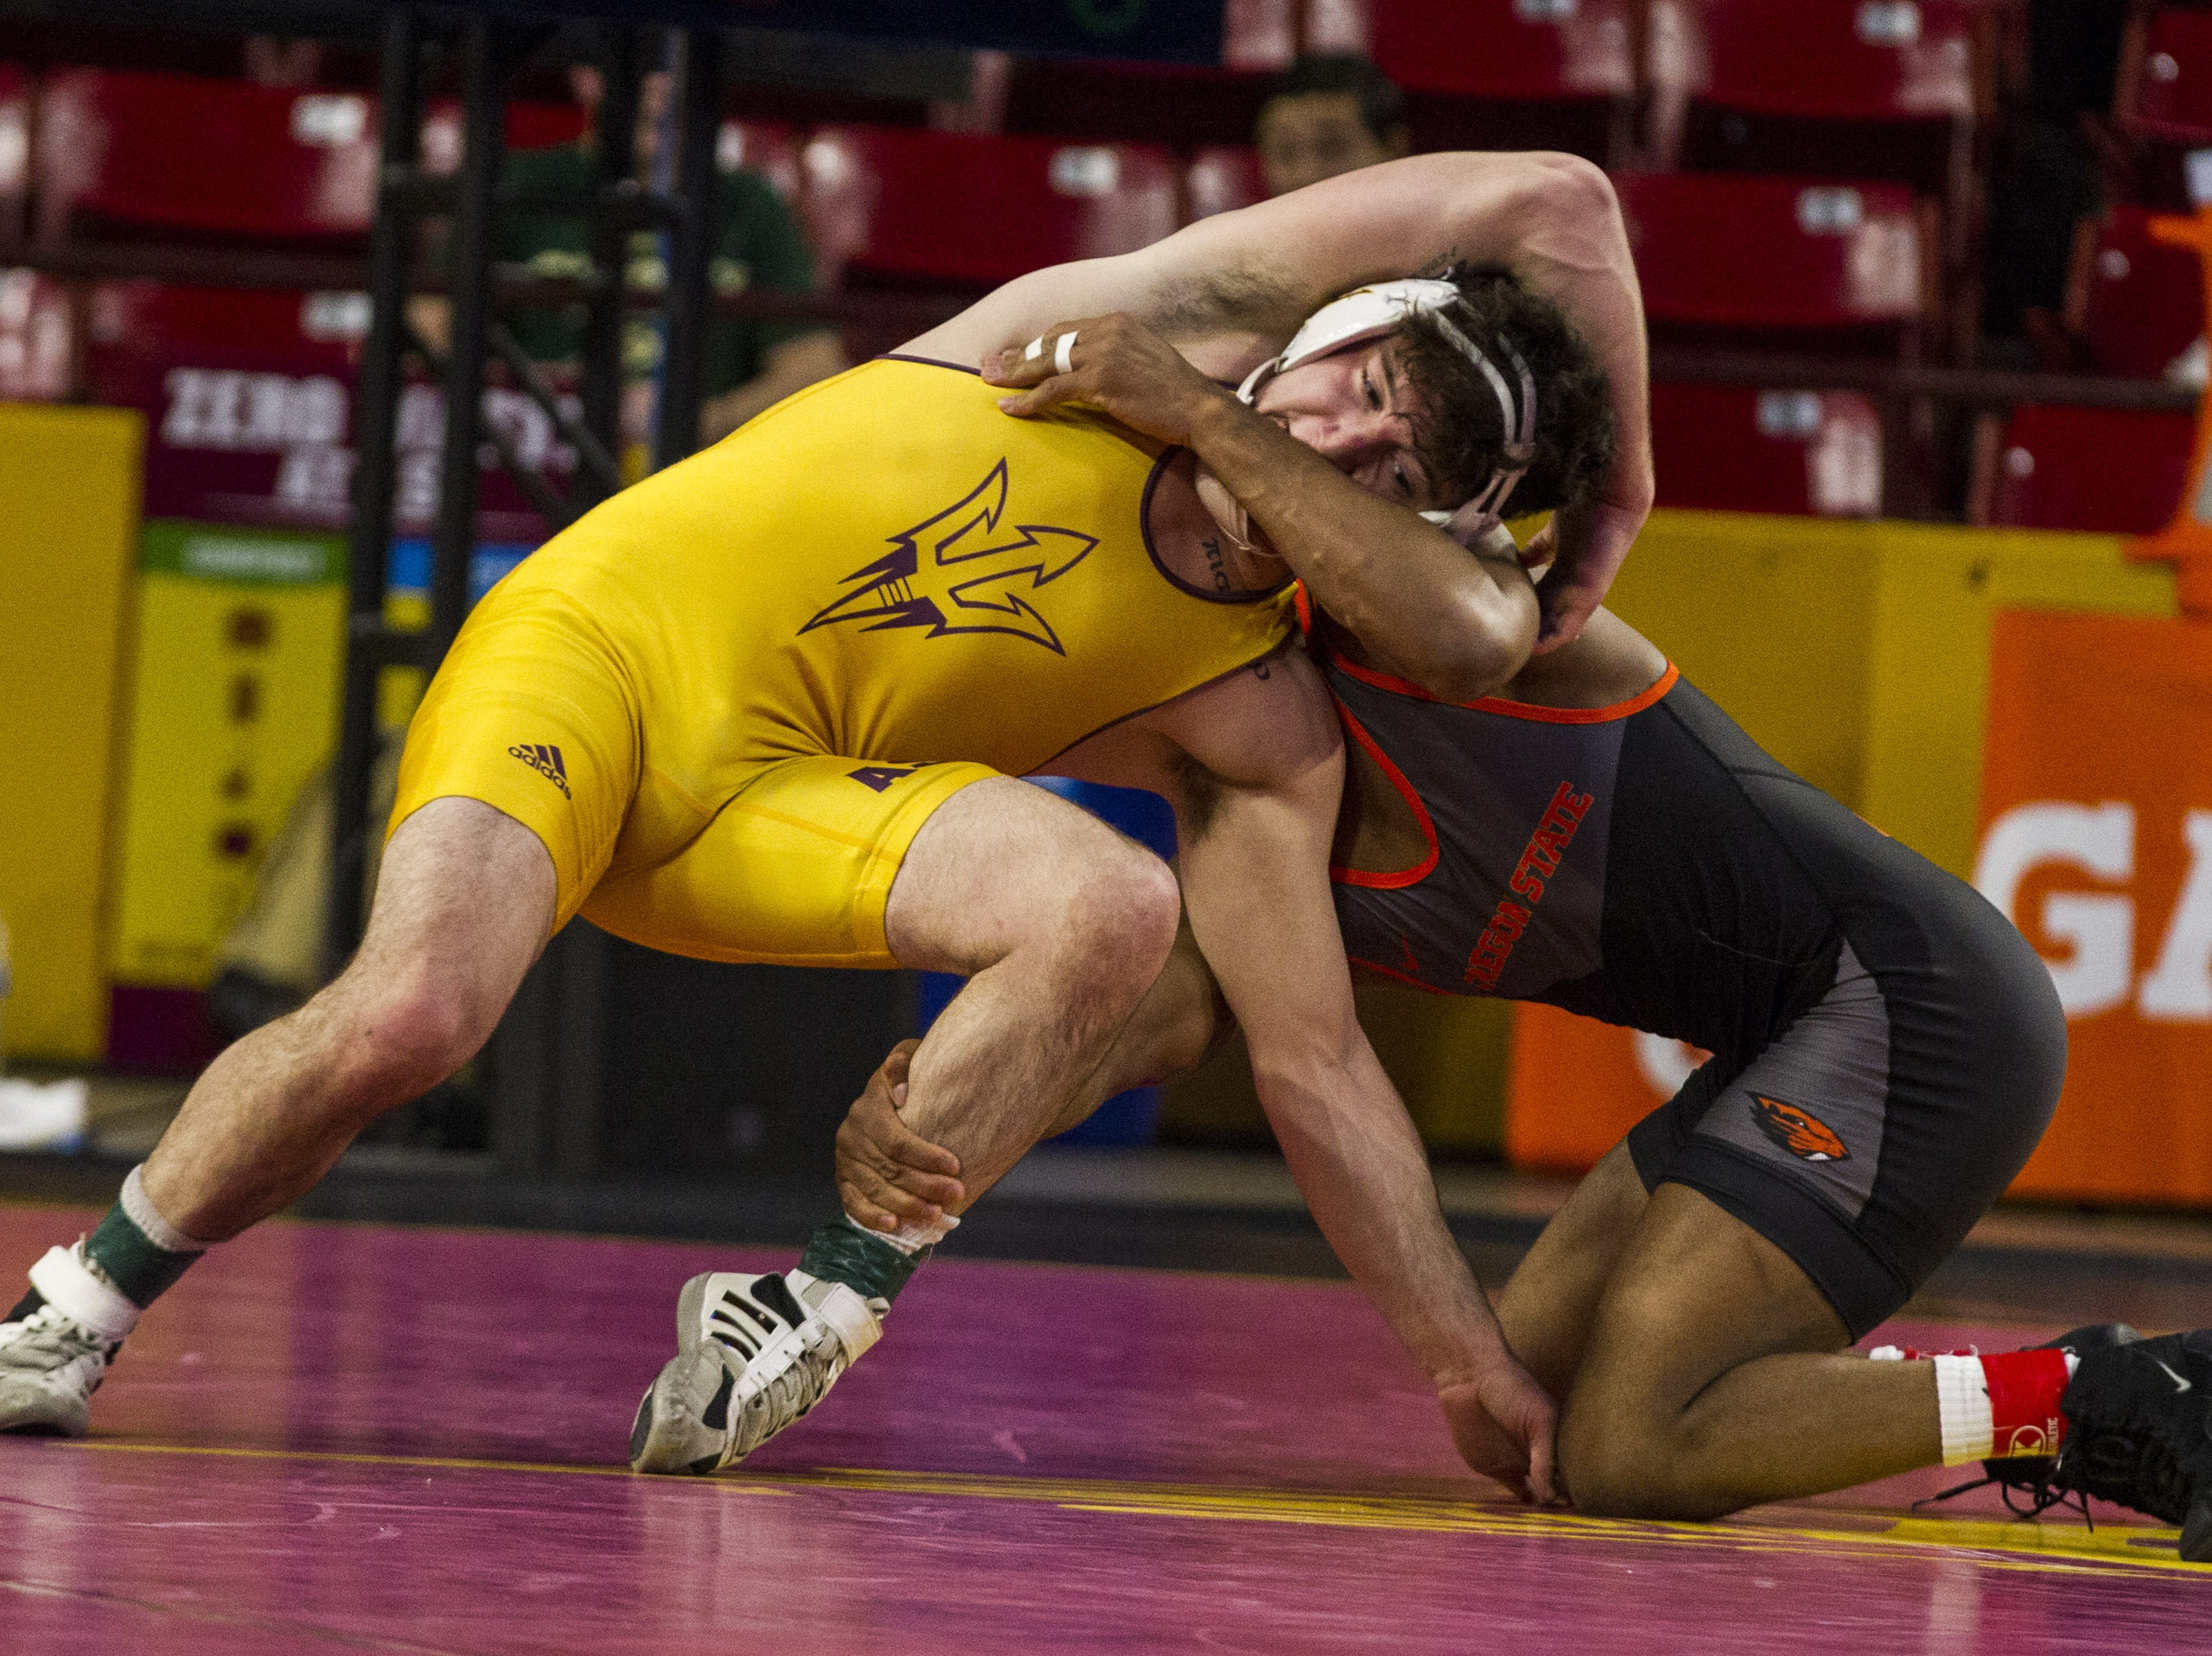 ASU's Josiah Kline grapples with Oregon State's Devan Turner in the 133 pounds weight class at Wells Fargo Arena in Tempe on March 9, 2019.